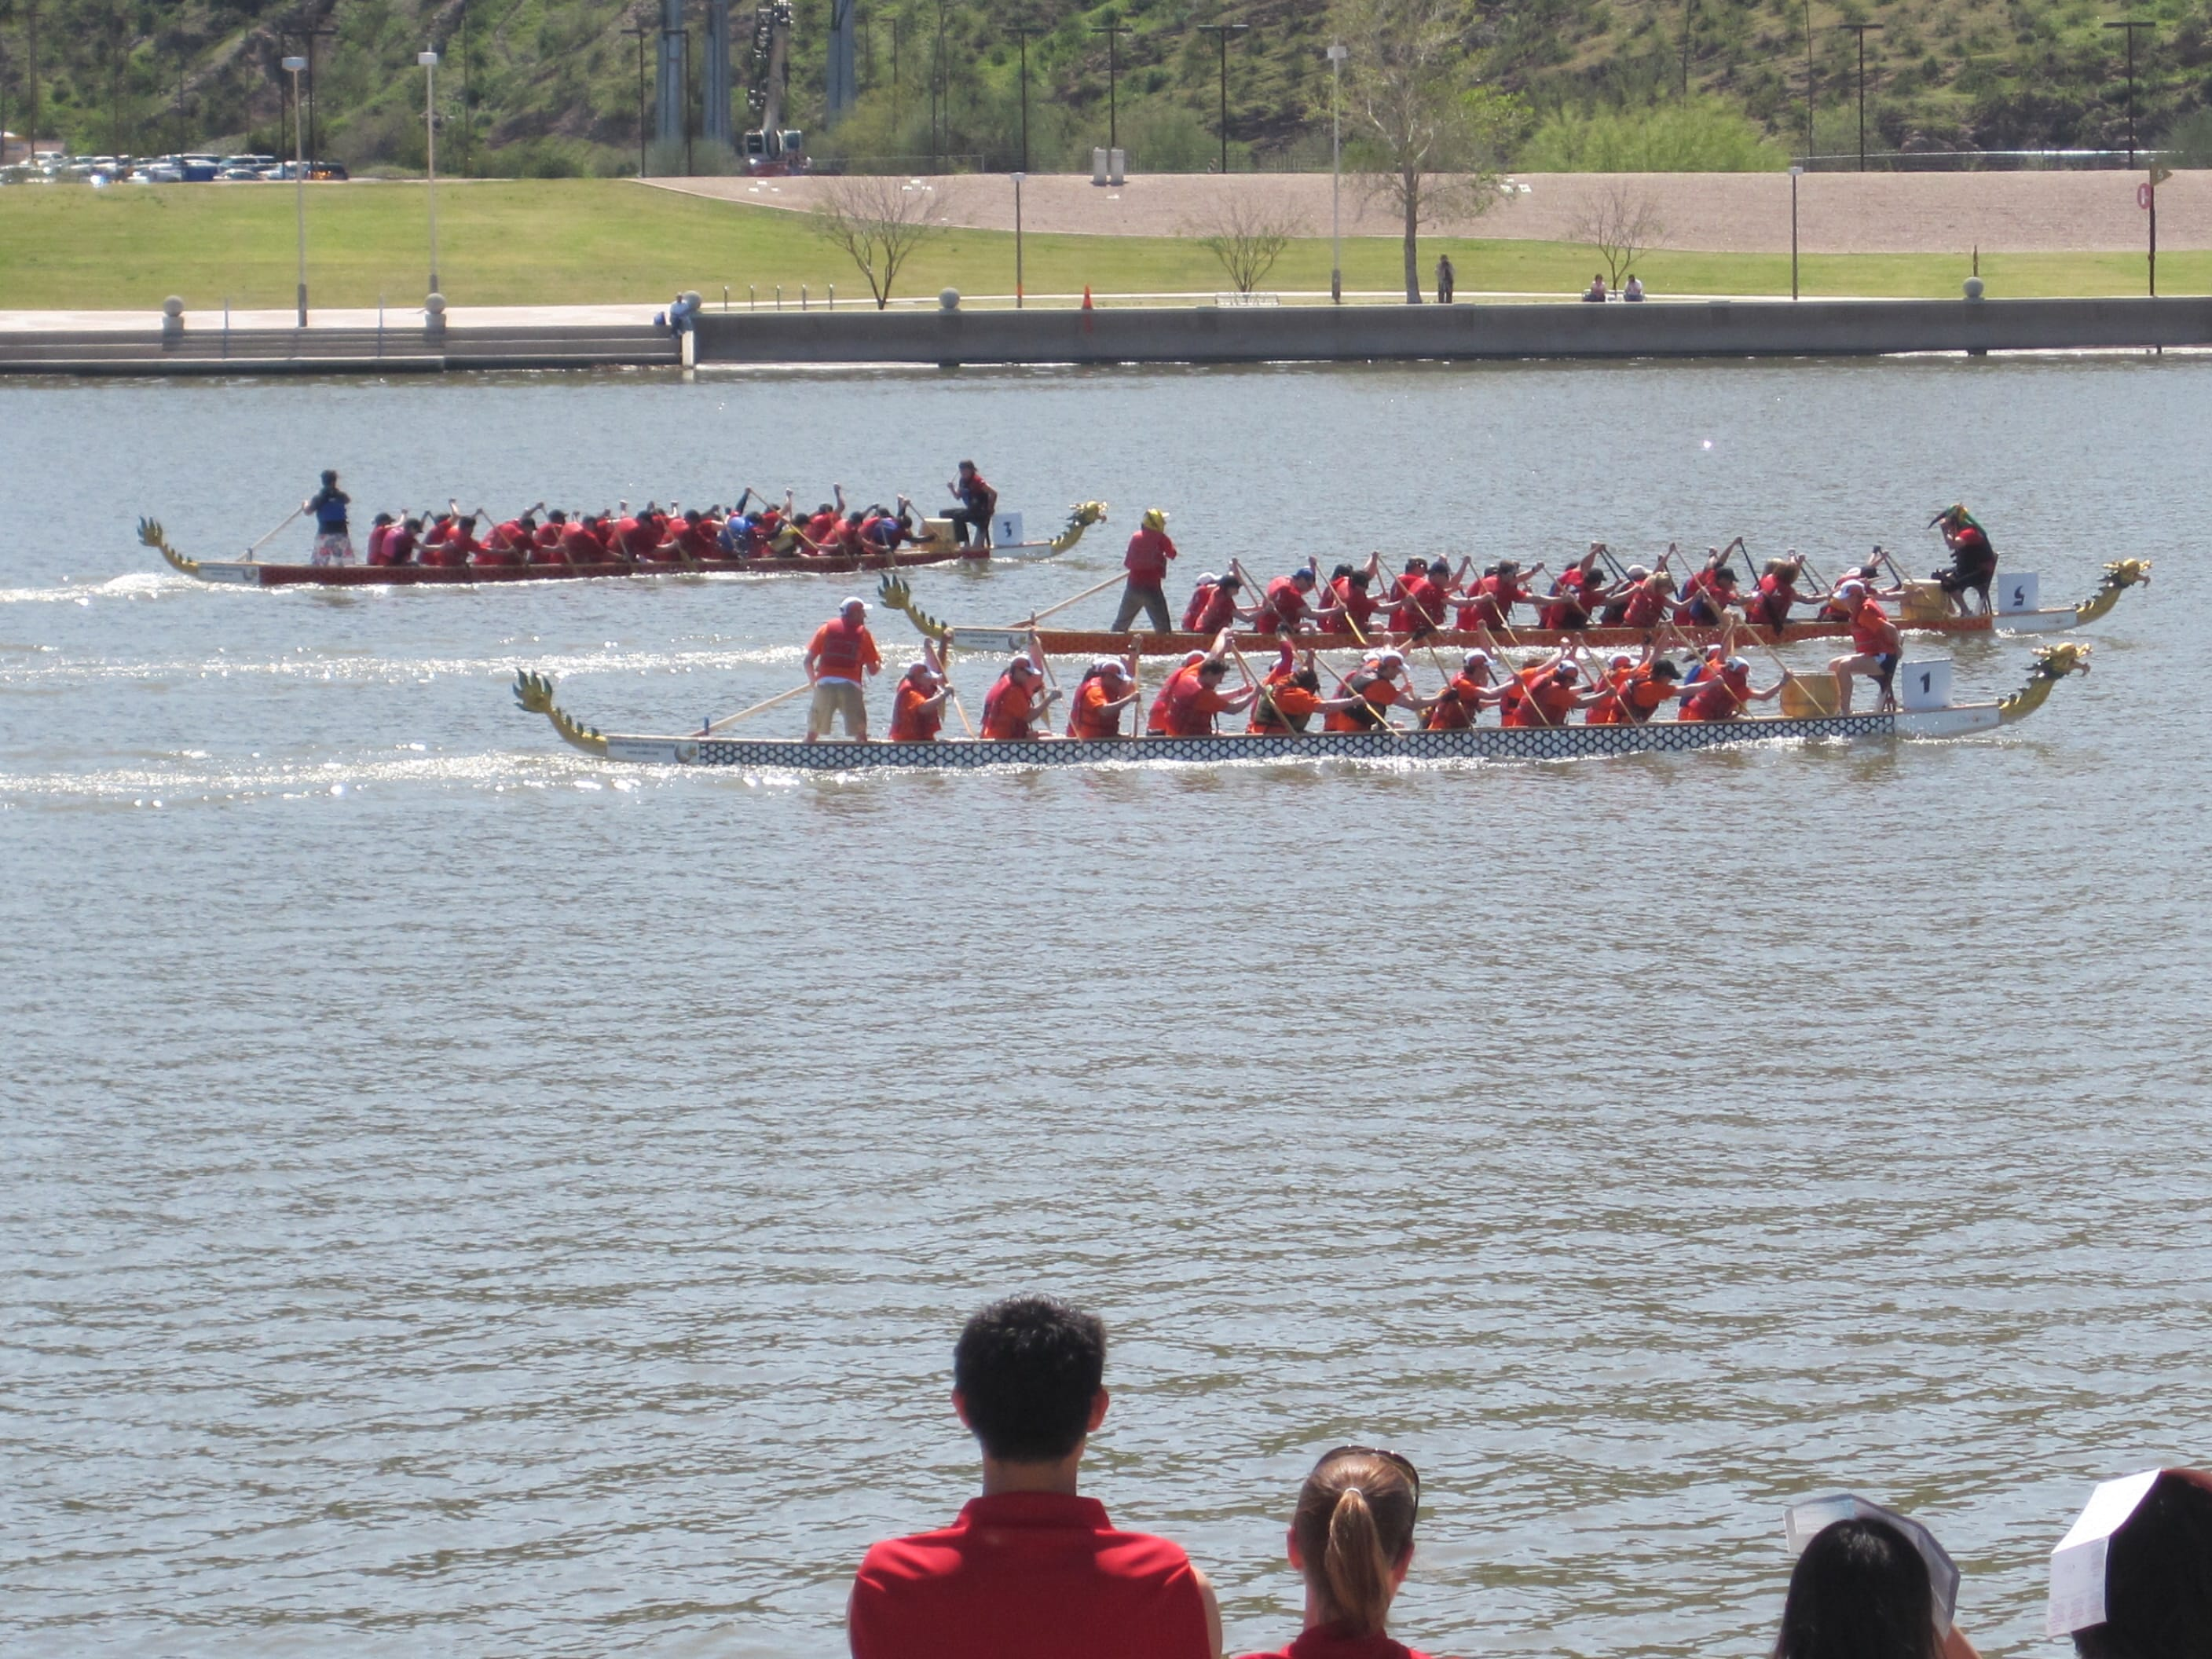 Mayo Clinic corporate dragon boat team Synchronicity